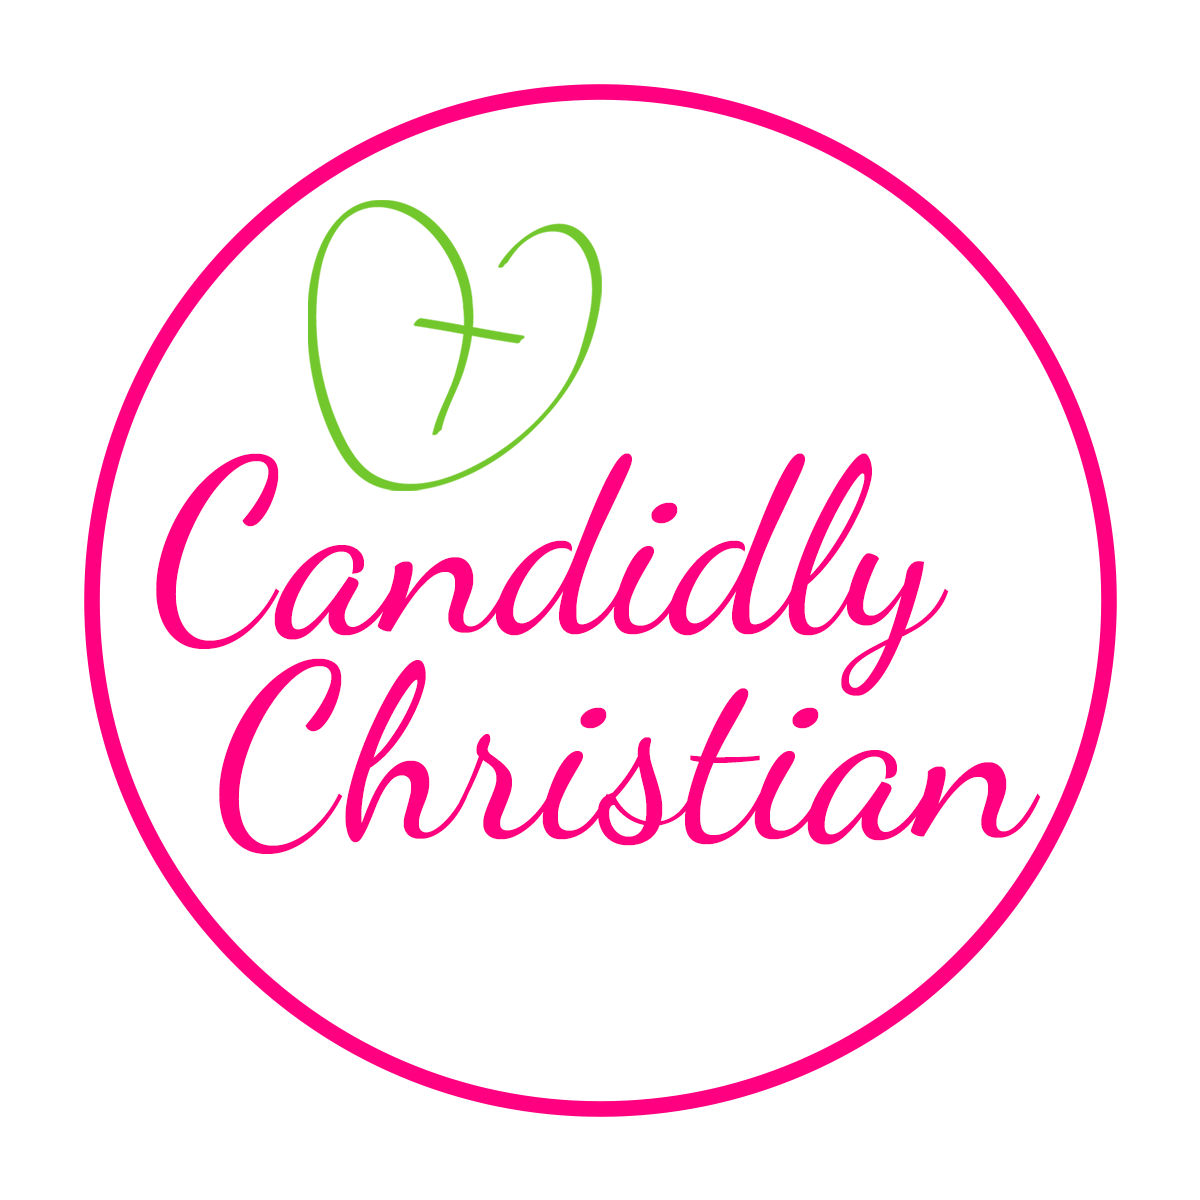 Co-Director Candidly Christian